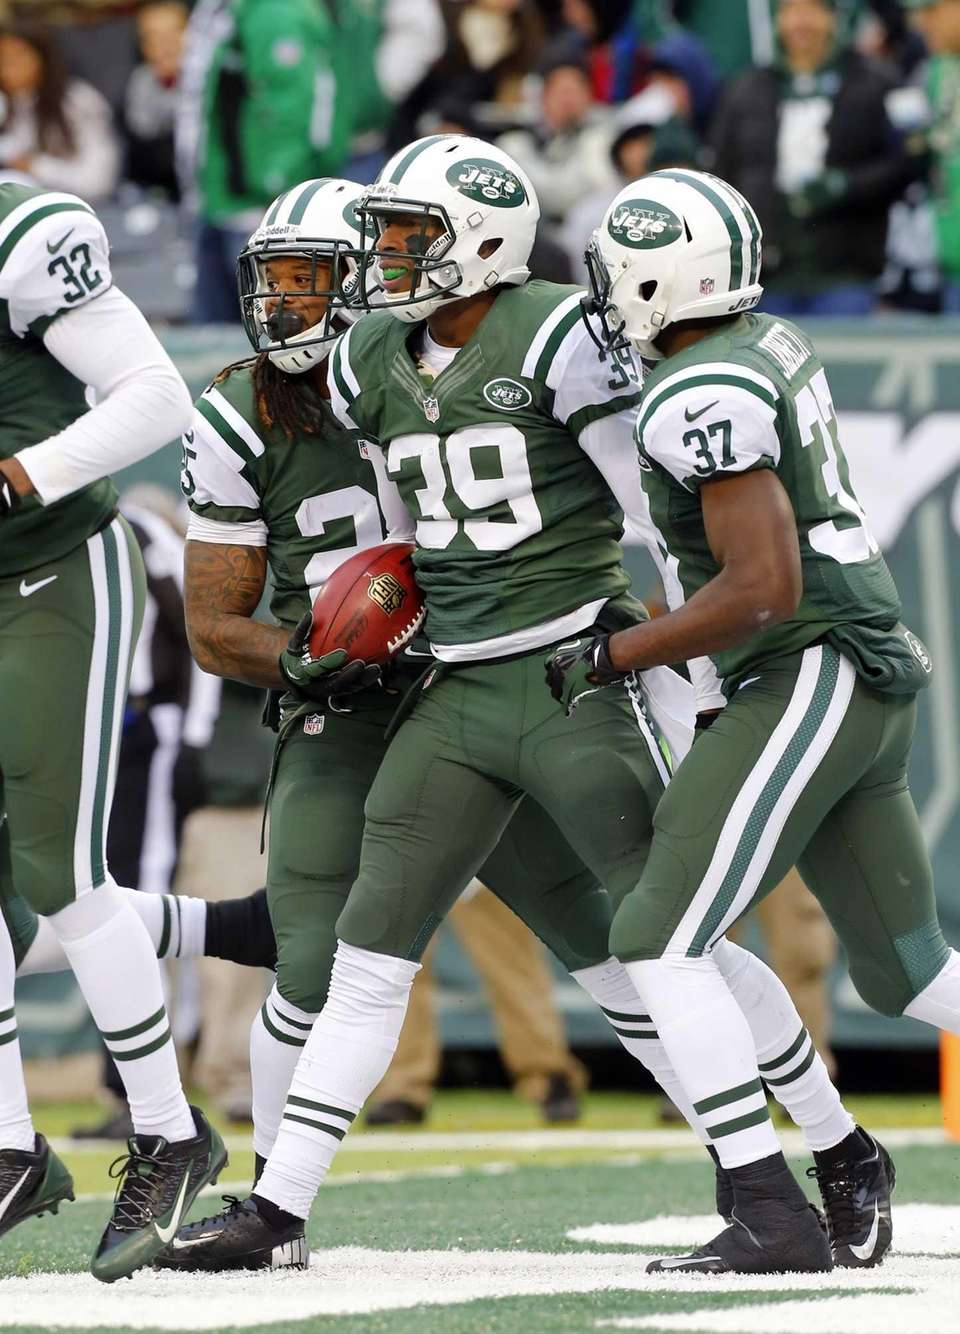 Antonio Allen celebrates his touchdown after recovering his